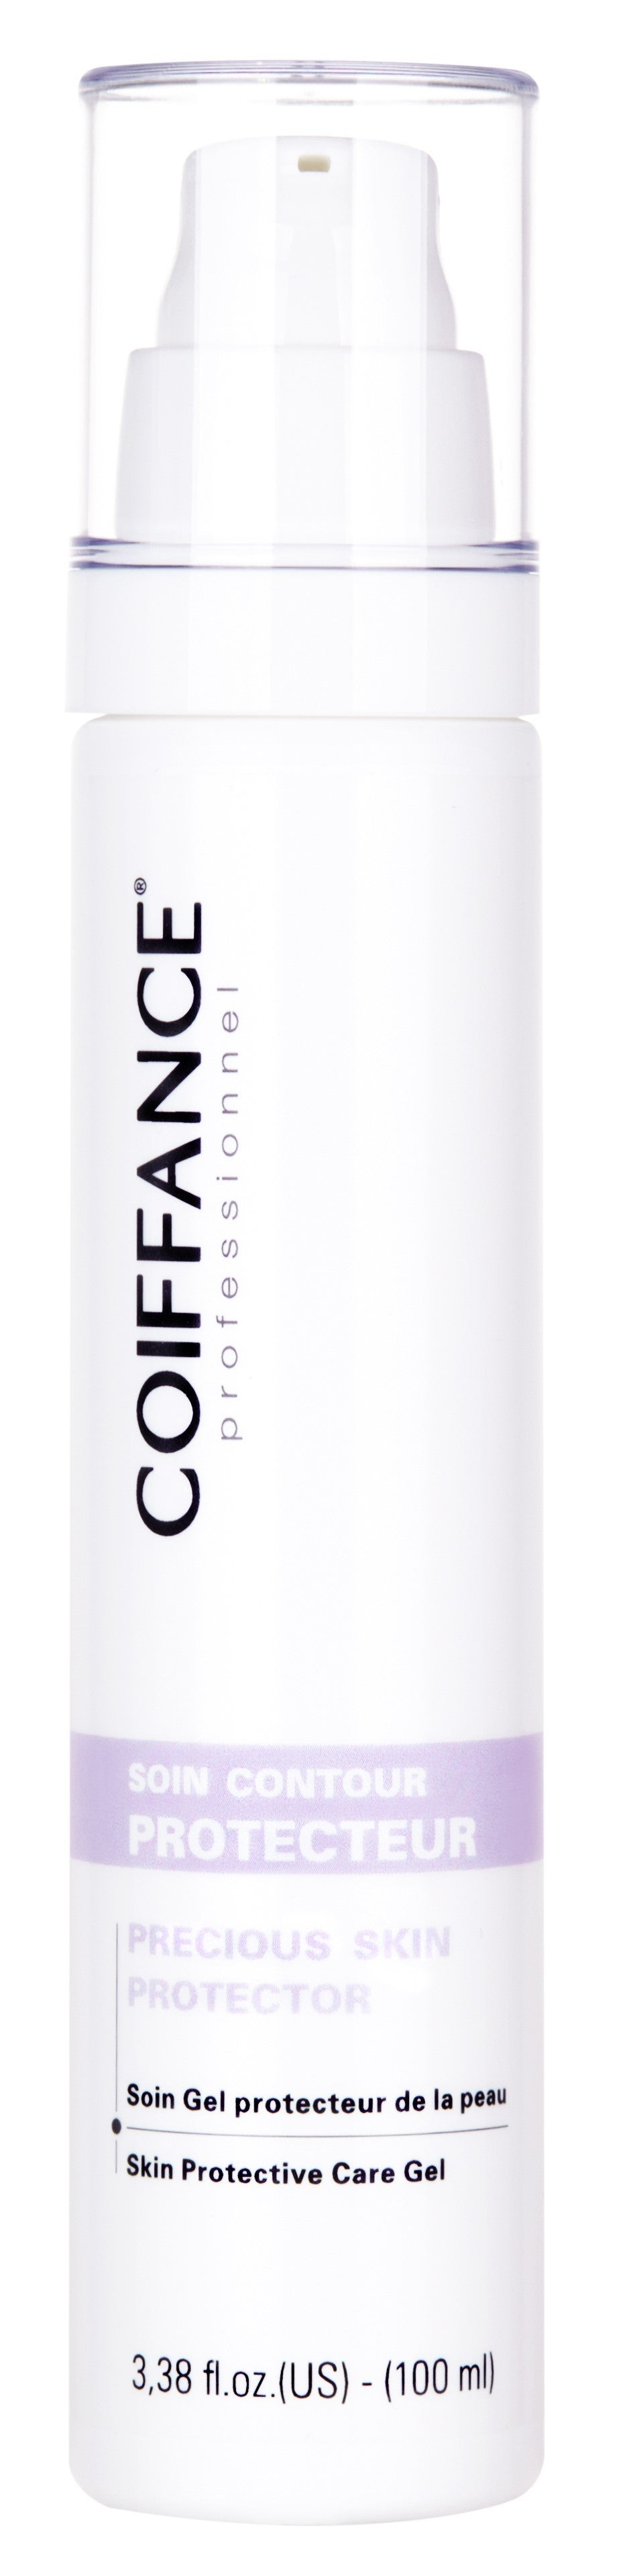 Coiffance Technic - outline skin protector - 100ML